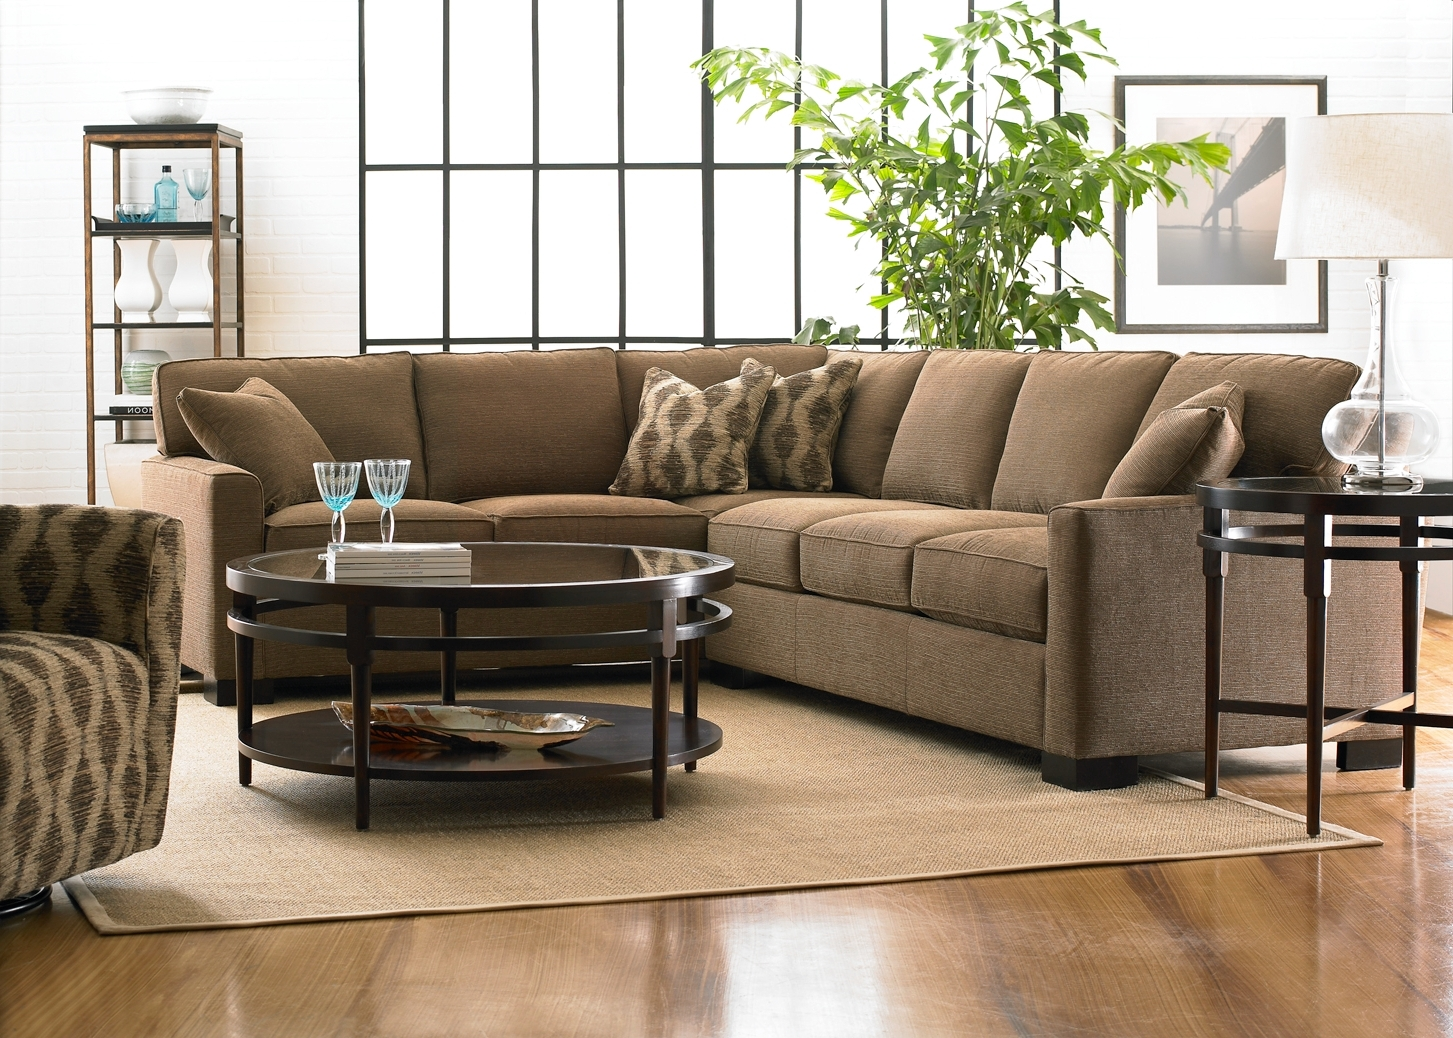 Reclining Sectional Sofas For Small Spaces With Most Current Sectional Sofas In Small Spaces (View 13 of 20)